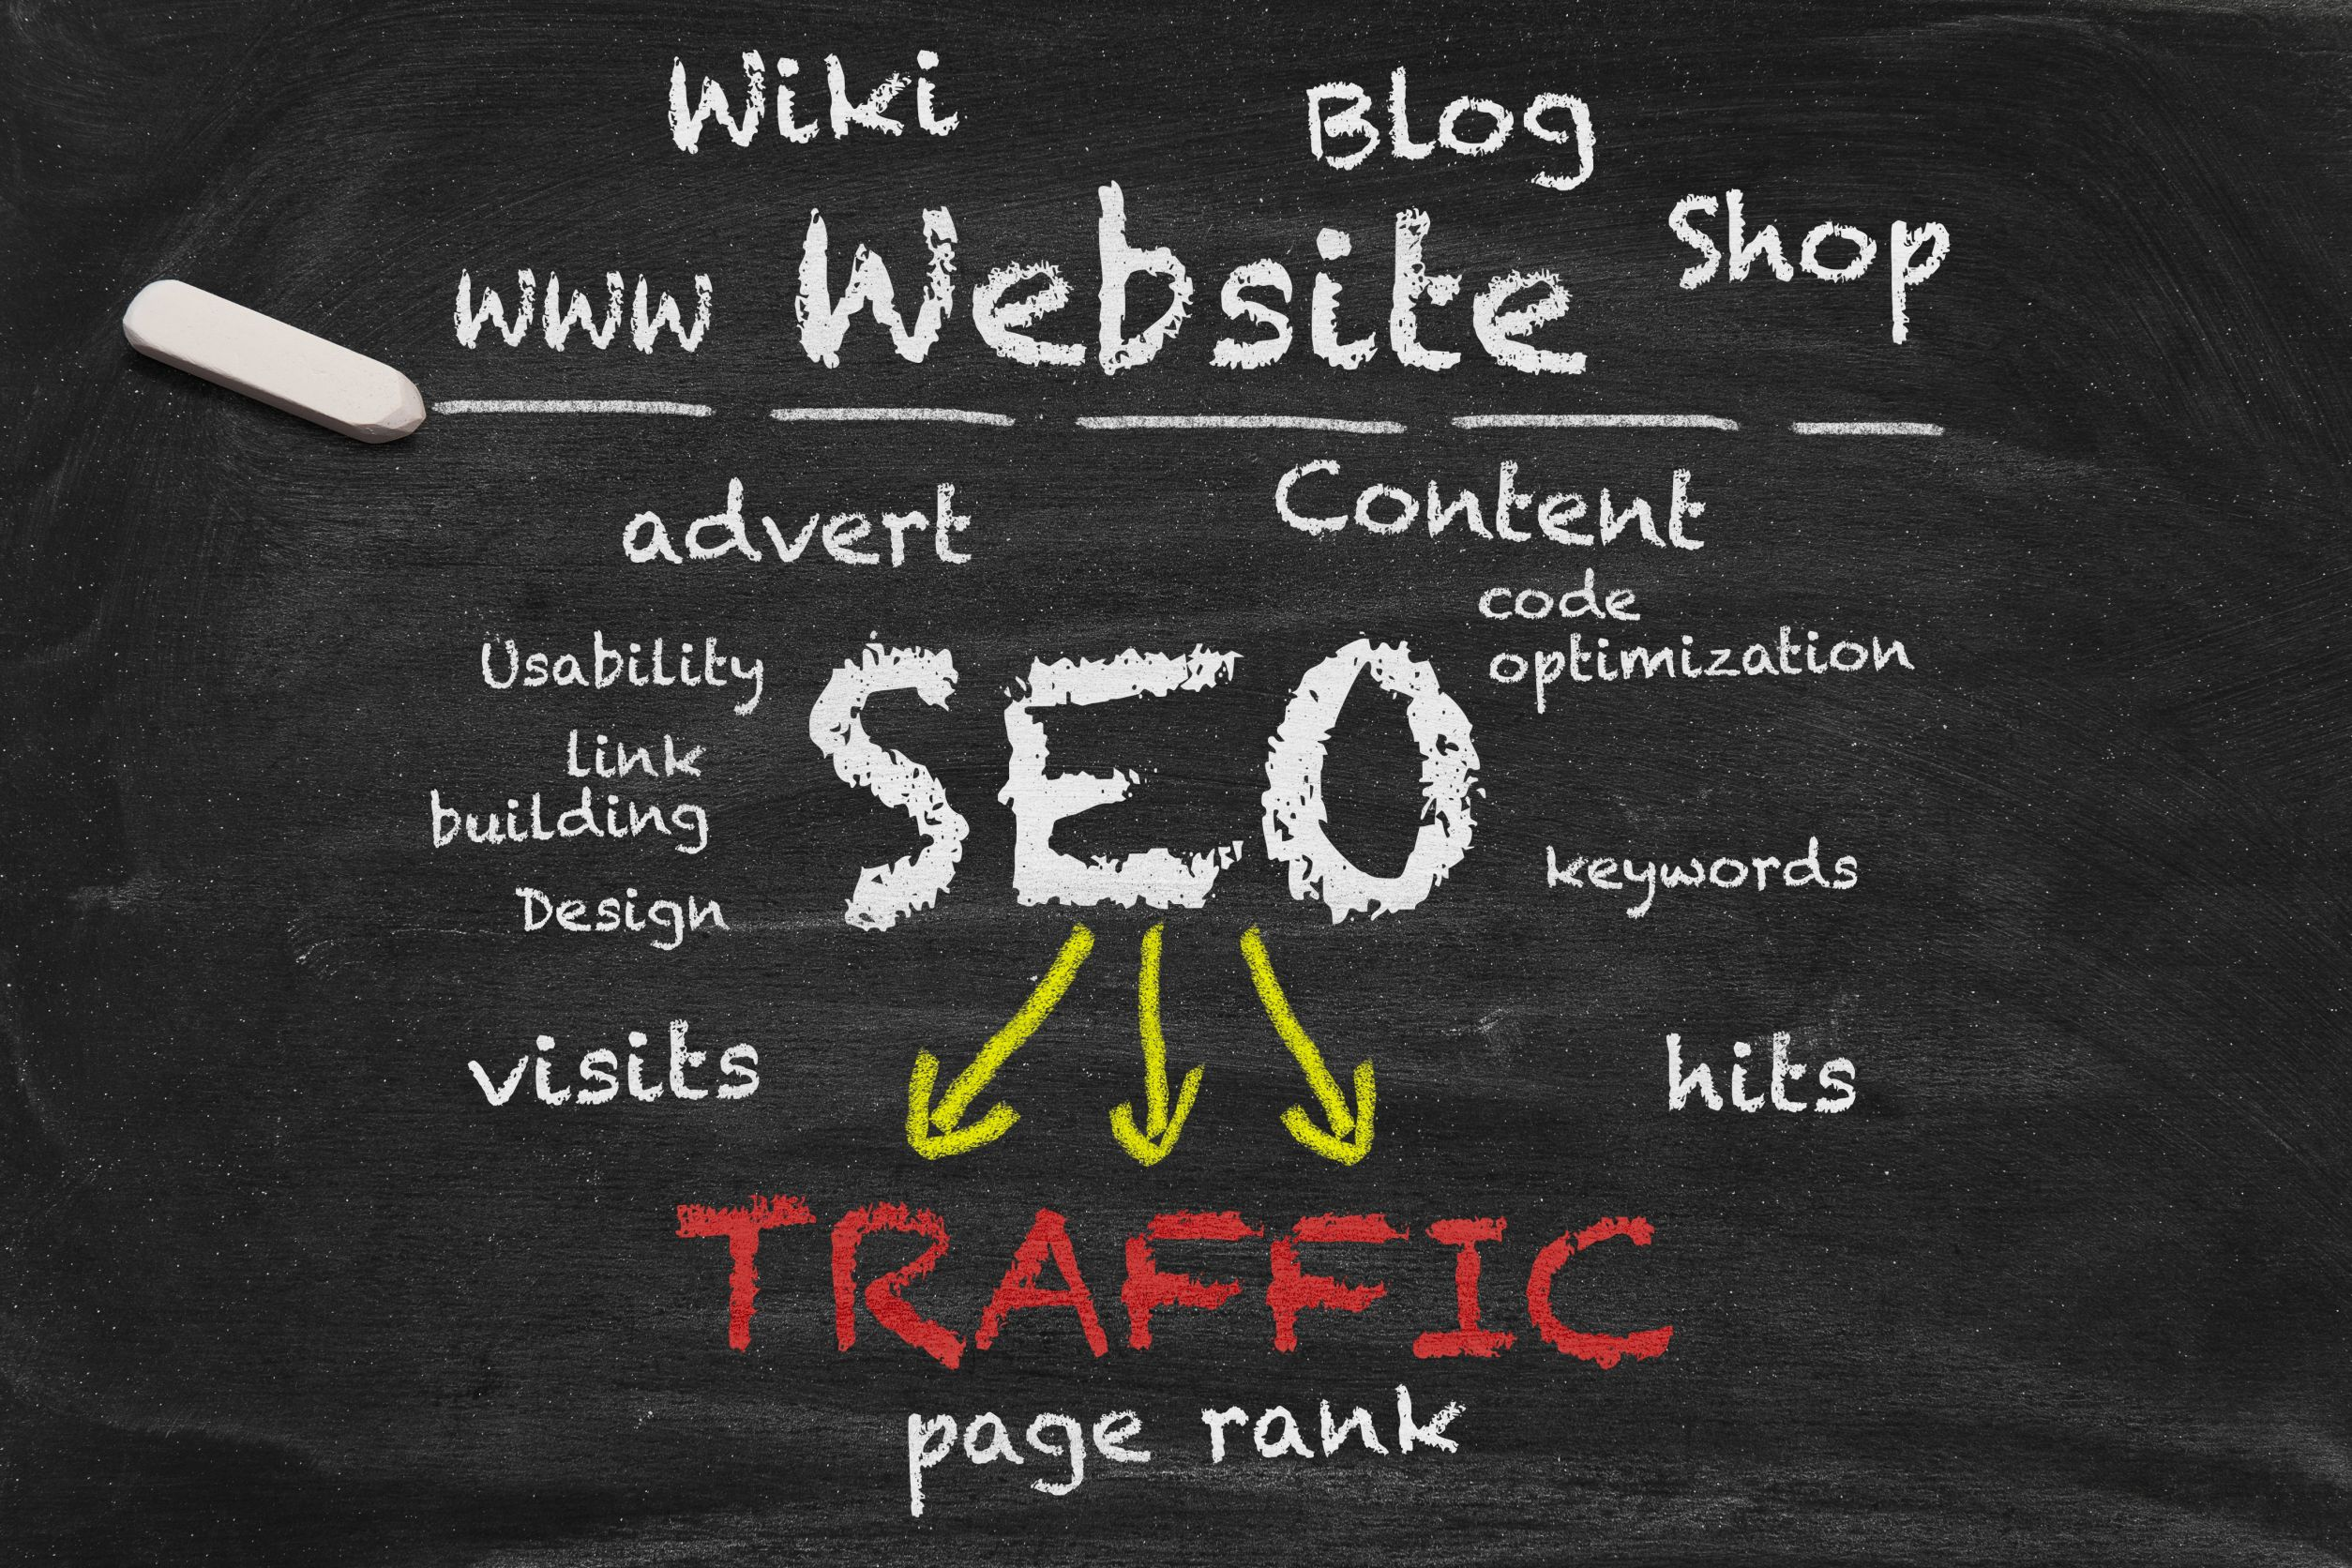 100 of Highest Quality web 2.0 Links